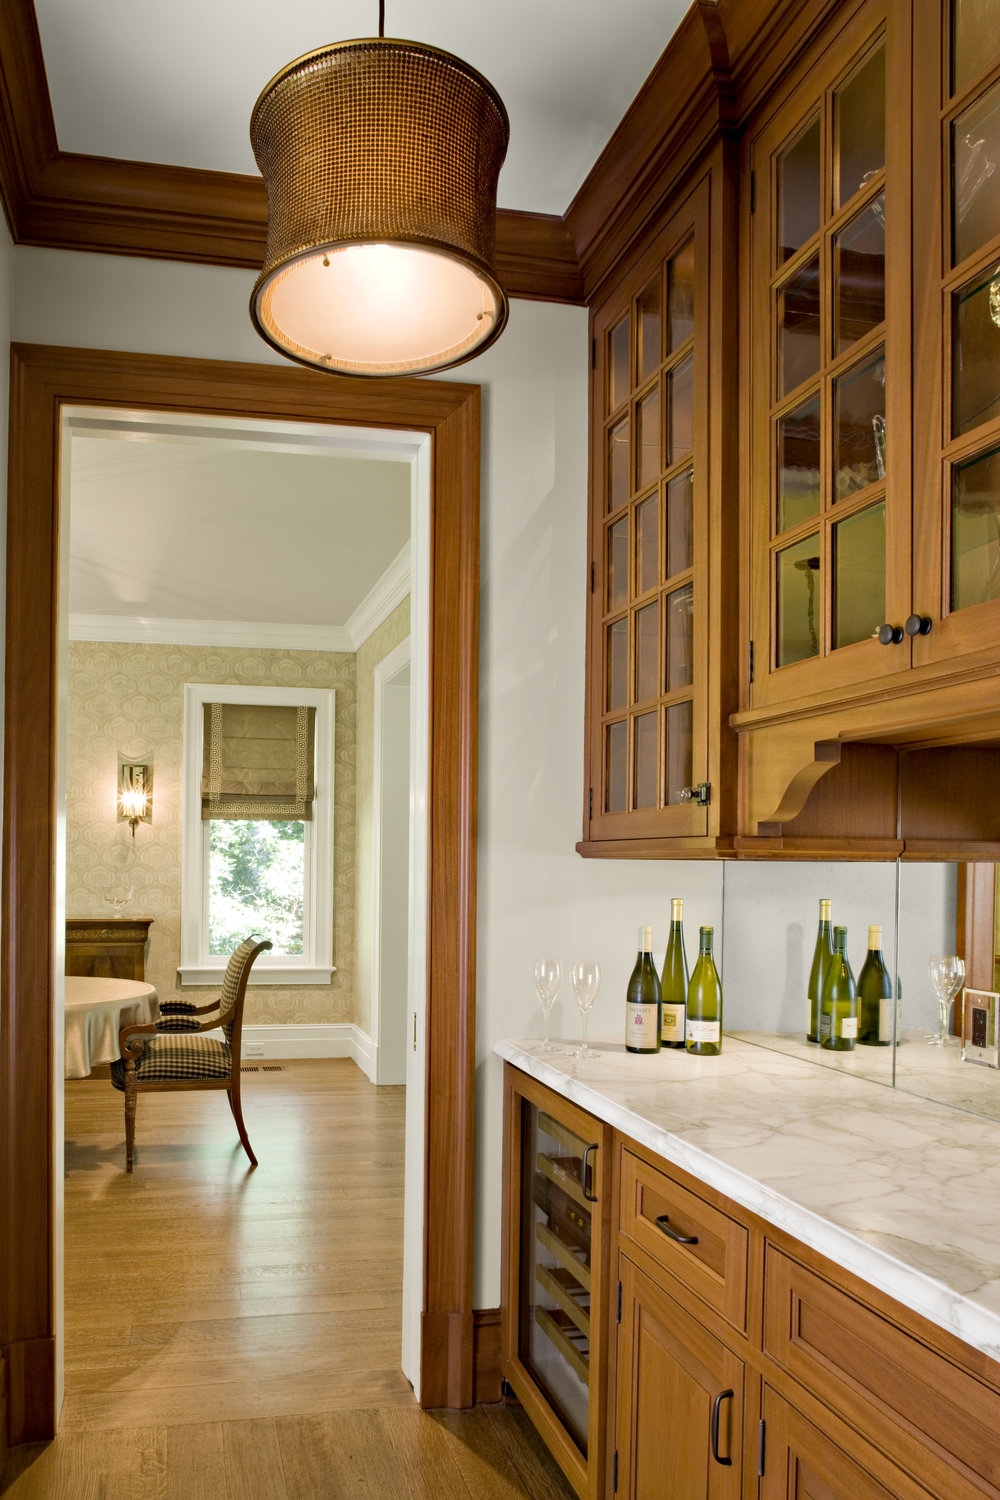 "This is the Butler's Pantry between the Kitchen and Dining Room.  We designed custom mahogany cabinetry and a Calacatta gold counter to match the island in the kitchen.  The backsplash is a lightly antiqued mirror.  In the Dining Room the walls were stenciled by a specialty paint company.  The stencil was sized for the height of the room, so that the baseboard and crown moulding assembly would not cut off the pattern.  This process was a 6 step process to produce the background in a linen finish, and a mix of plaster and paint for the stencil.  The wood flooring is a beautiful rift & quarter sawn white oak in long boards.  In standard construction, wood floors are nailed to formaldehyde emitting underlayment and then finished with solvent-based finishes that will off-gas for months.  In this project, old-fashioned, solid 1x8's were installed diagonally over the framing for the subfloor (instead of plywood), ""dustless"" sanding with a HEPA vacuum was specified to the floor installer and a solvent-free floor finish was used."